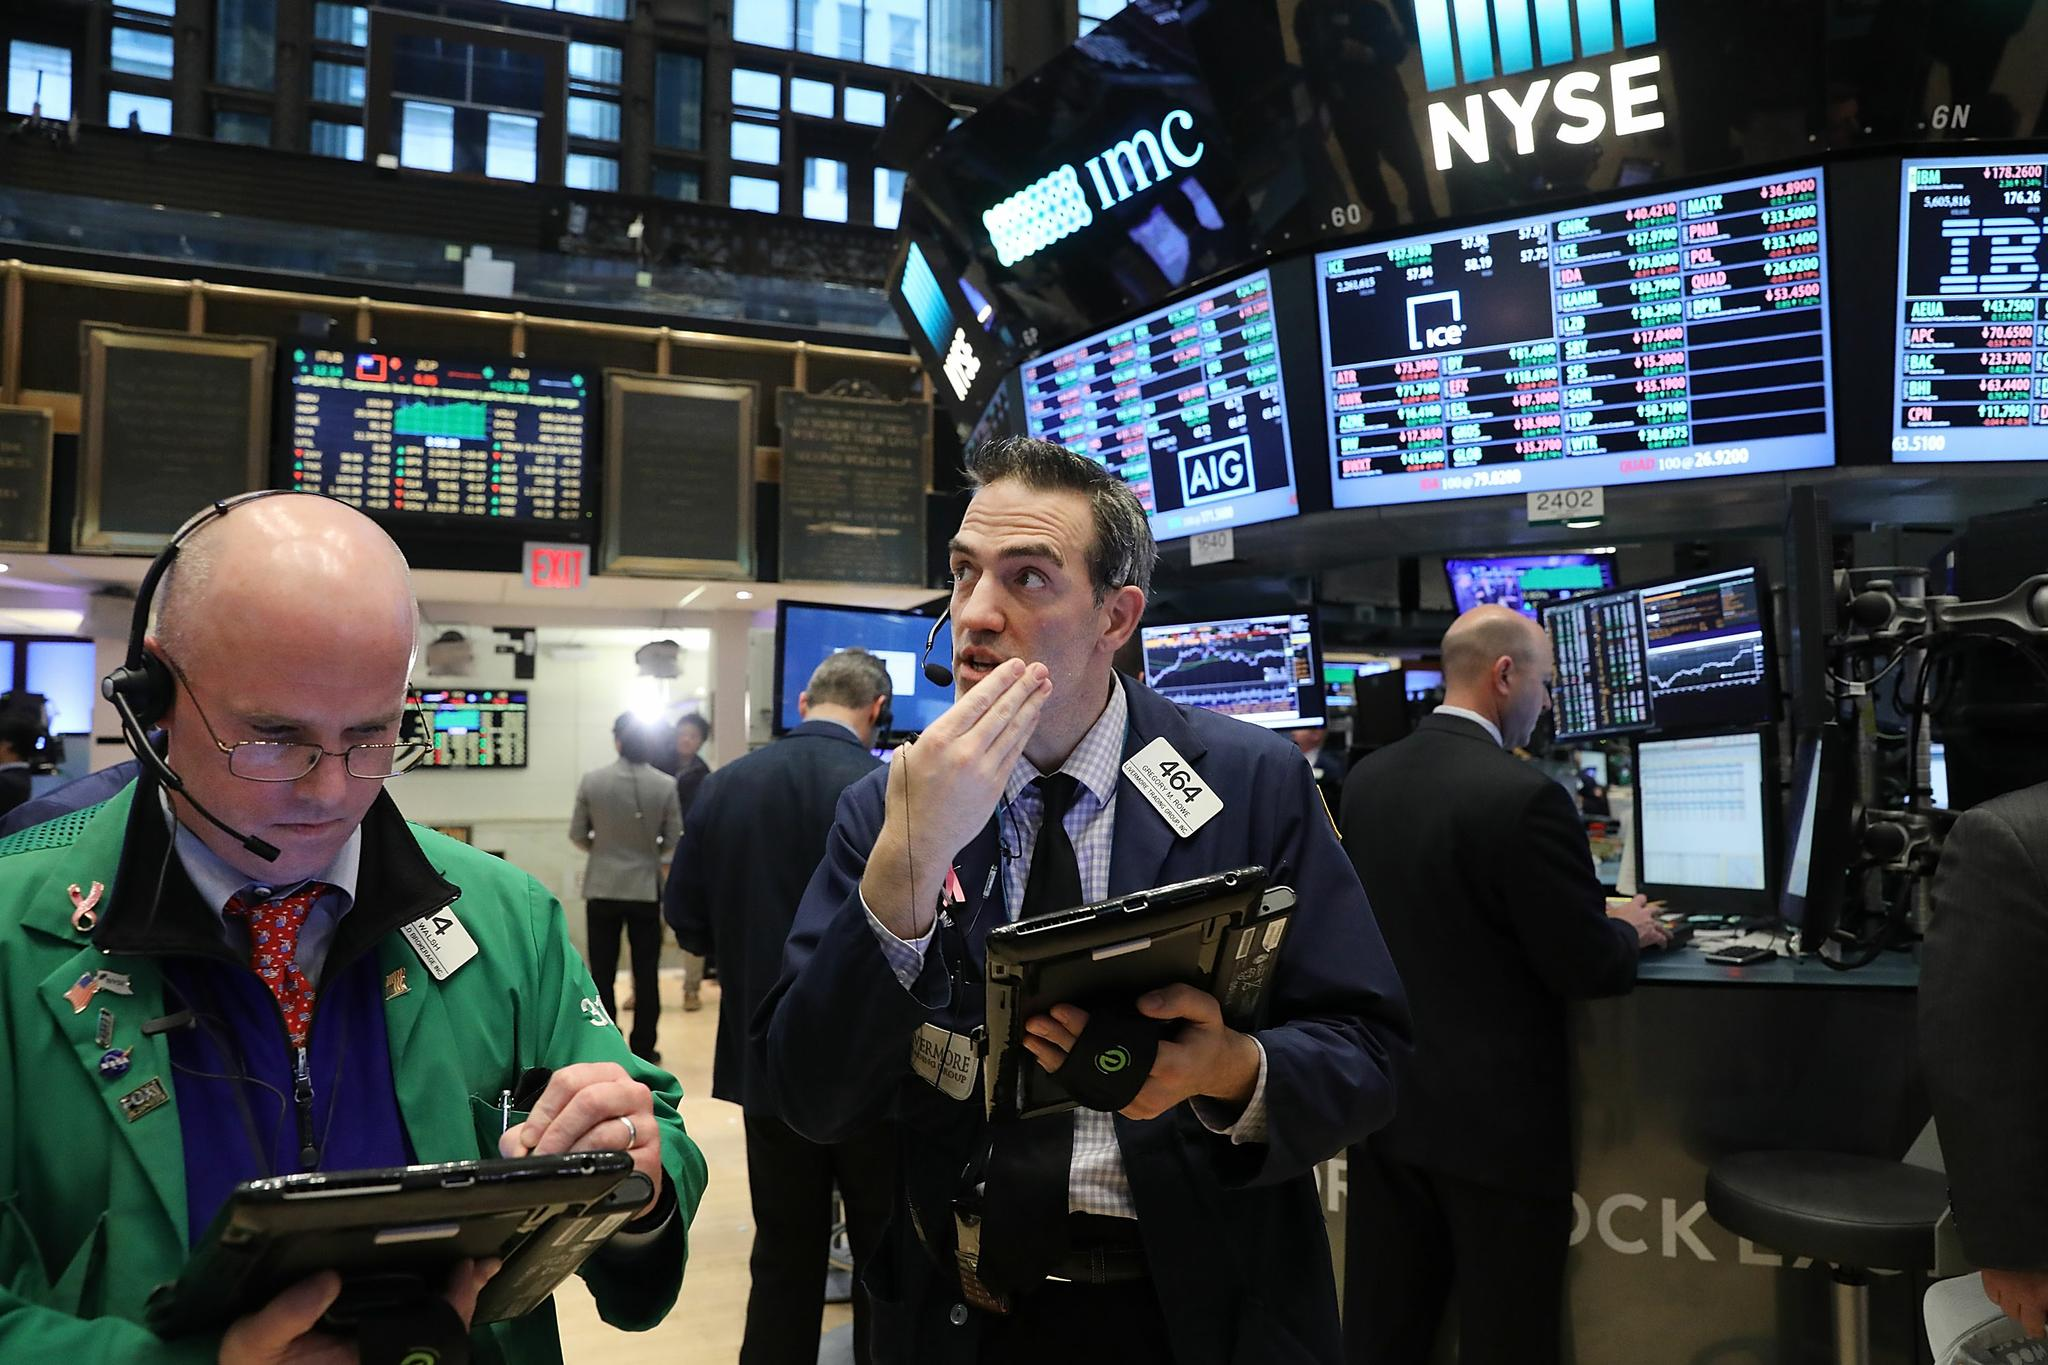 Traders work on the floor of the New York Stock Exchange (NYSE) as the Dow Jones industrial average closed above the 20,000 mark for the first time on January 25 in New York City.